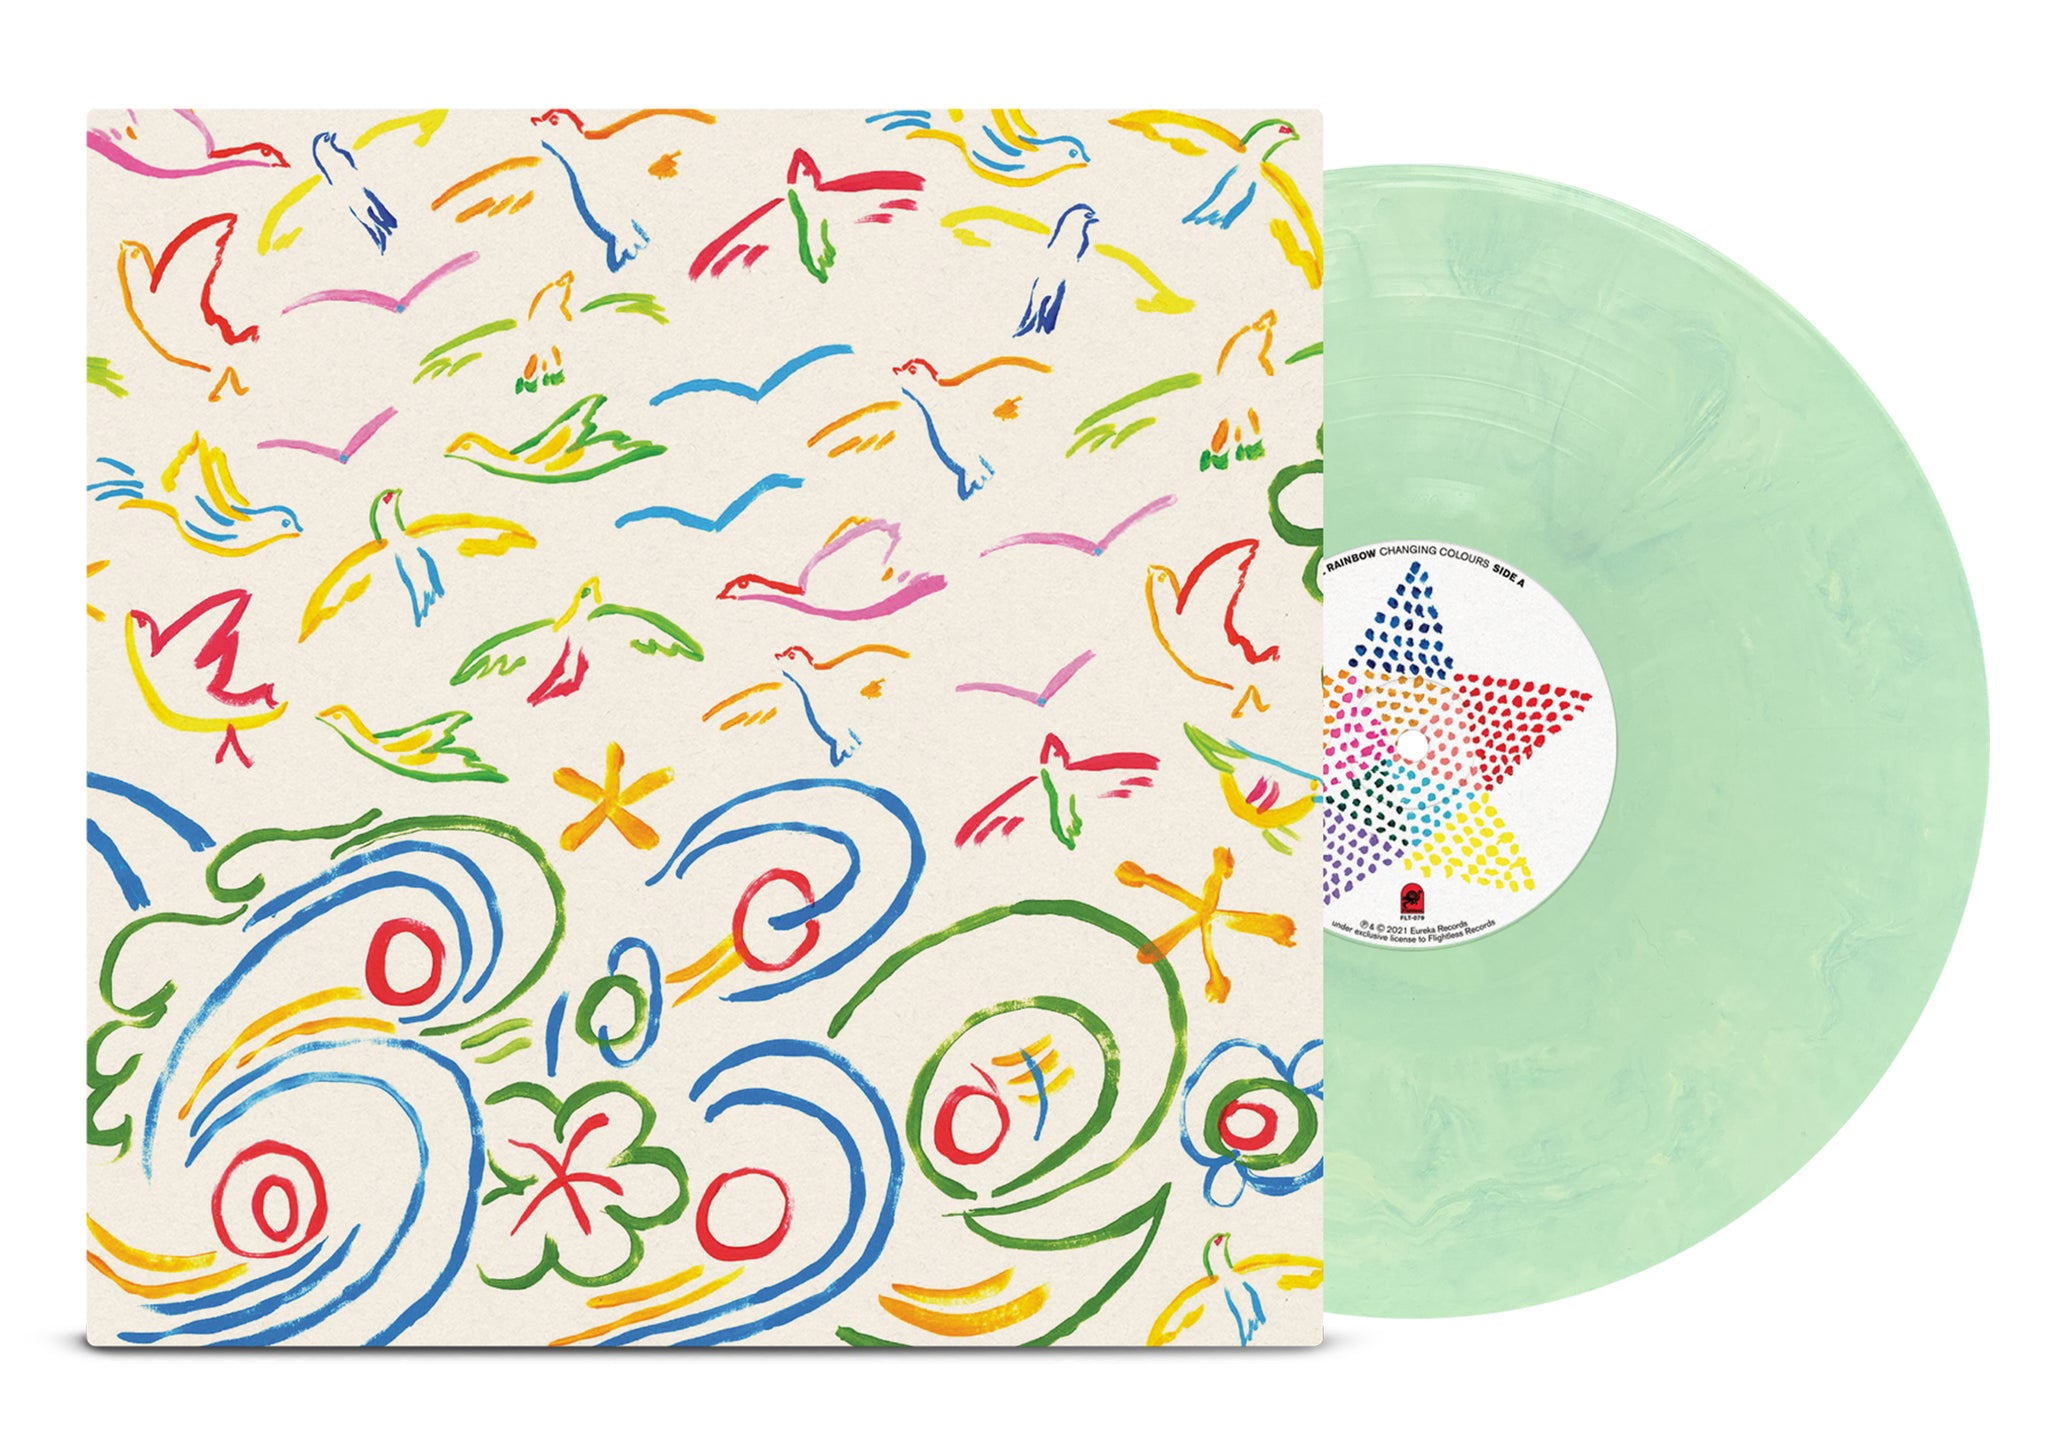 Babe Rainbow - Changing Colours (Greenroom Limited Edition PRE~ORDER)